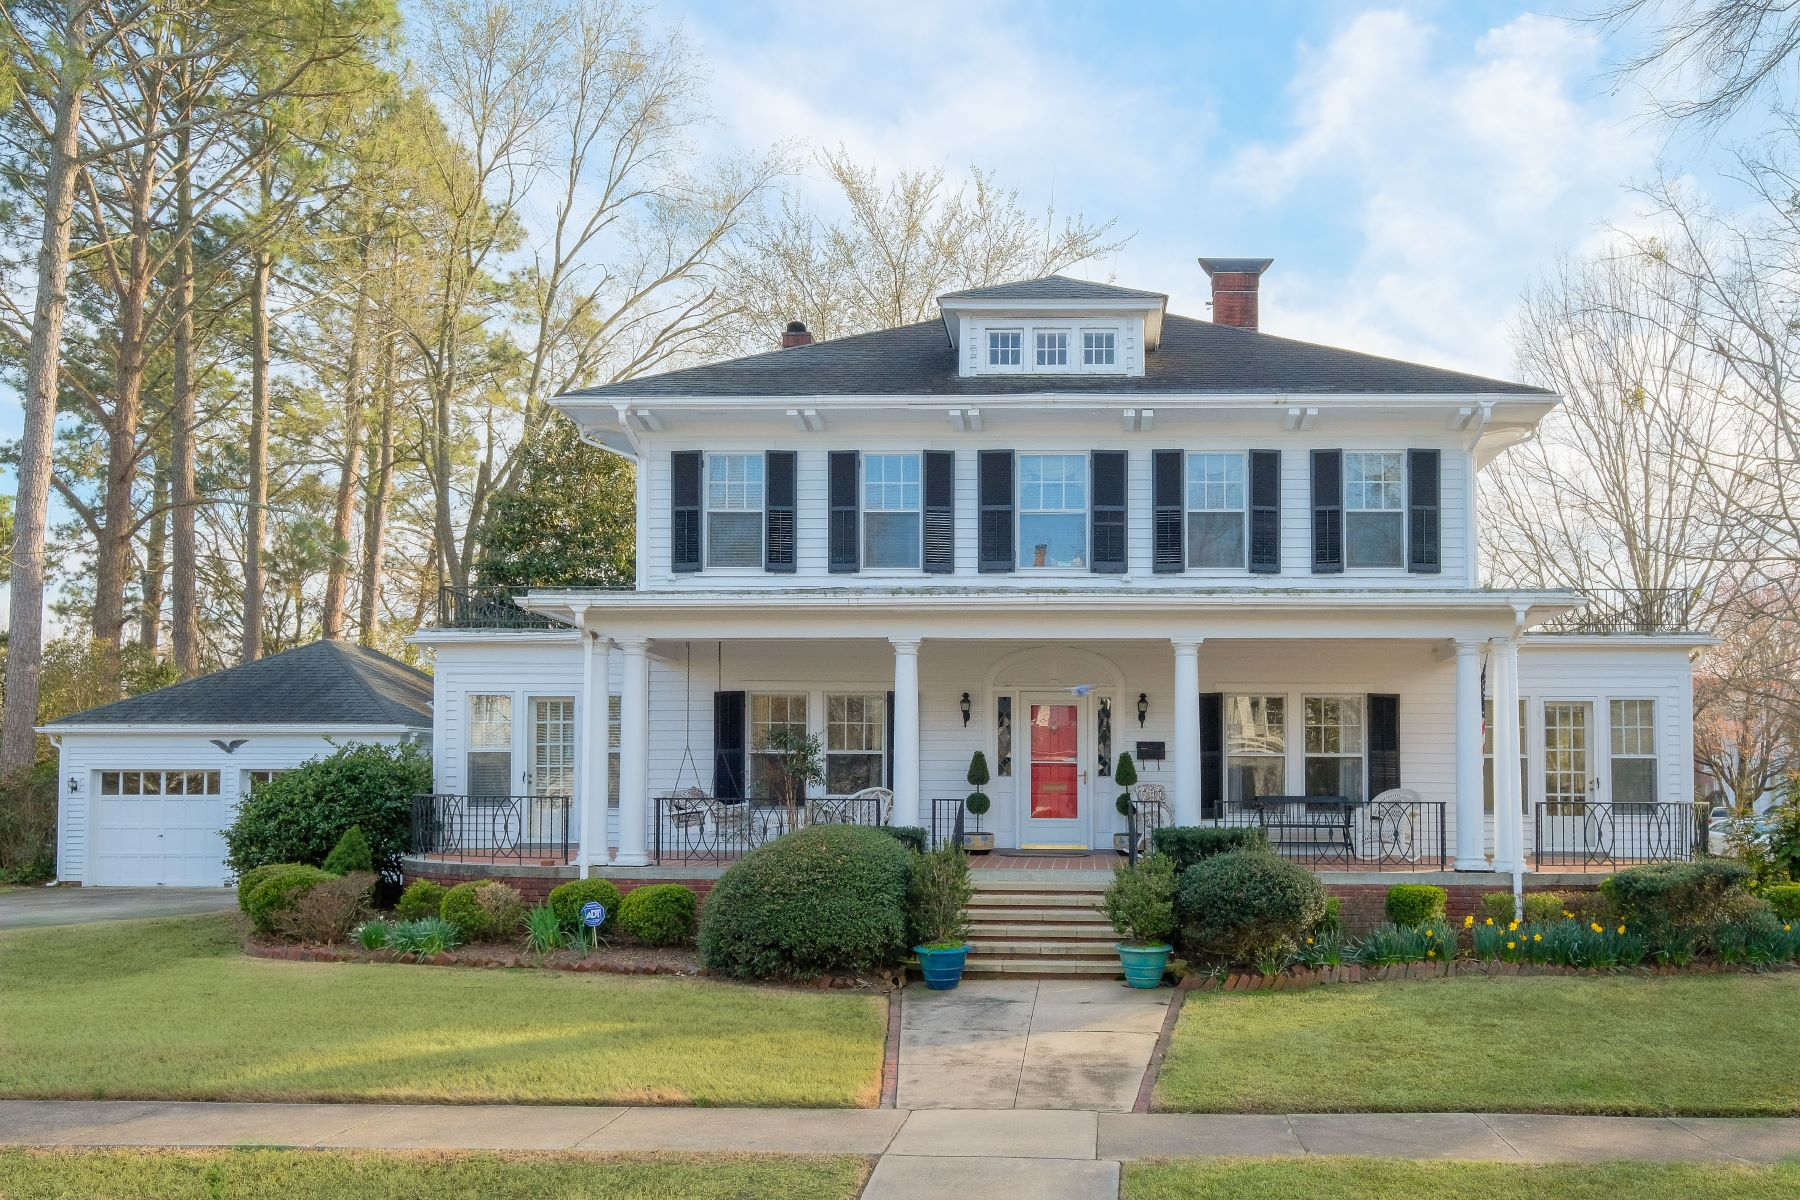 Single Family Homes for Sale at HANDSOME HISTORIC DISTRICT 119 W Church St Edenton, North Carolina 27932 United States